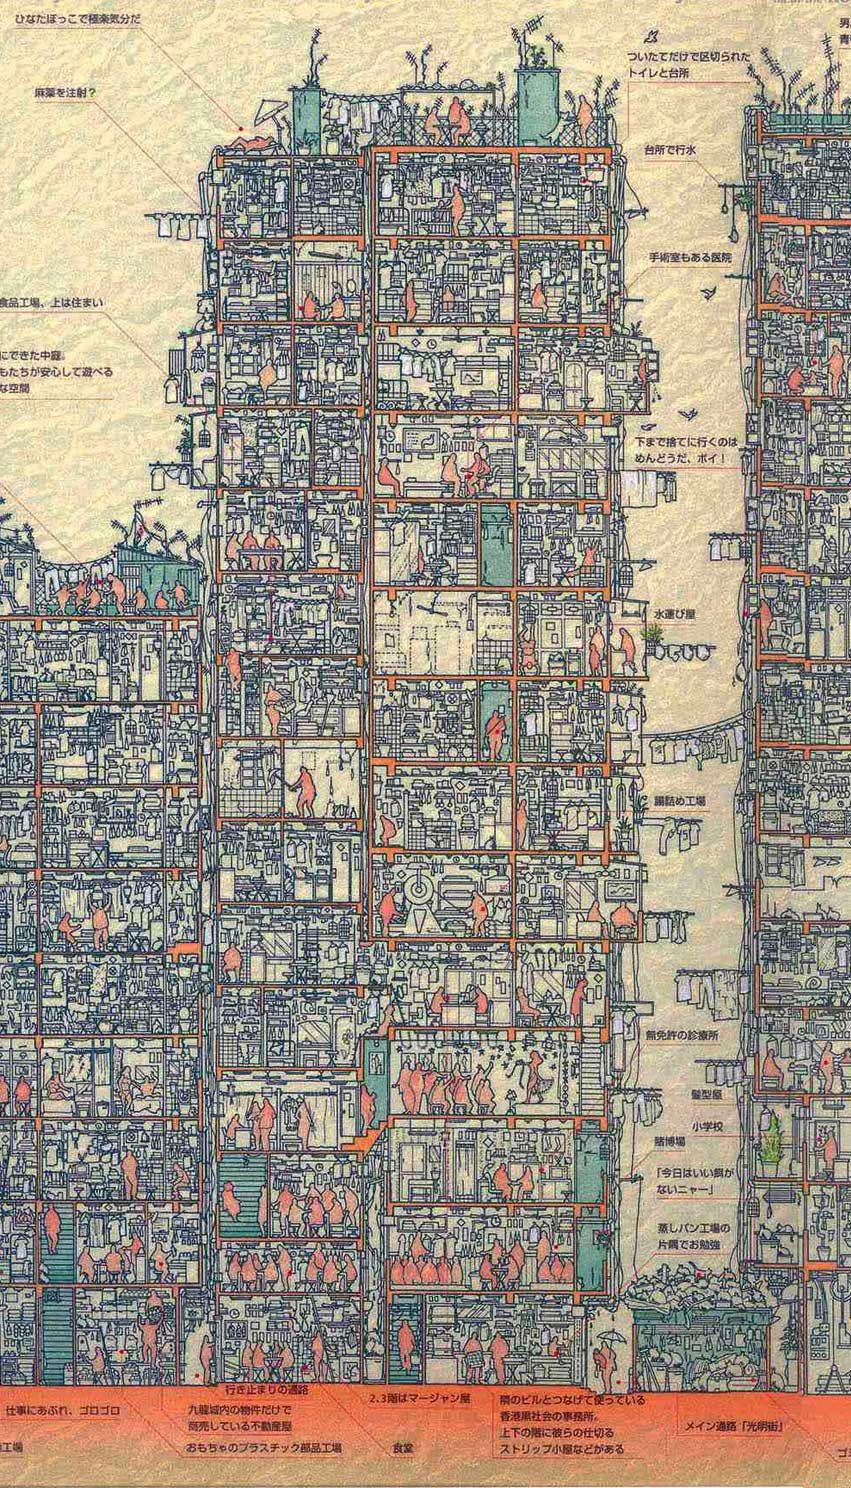 Kowloon Walled City cross section architecture without architects http://www.hongkongbuzz.com/must-see/kowloon-city-walled-park/